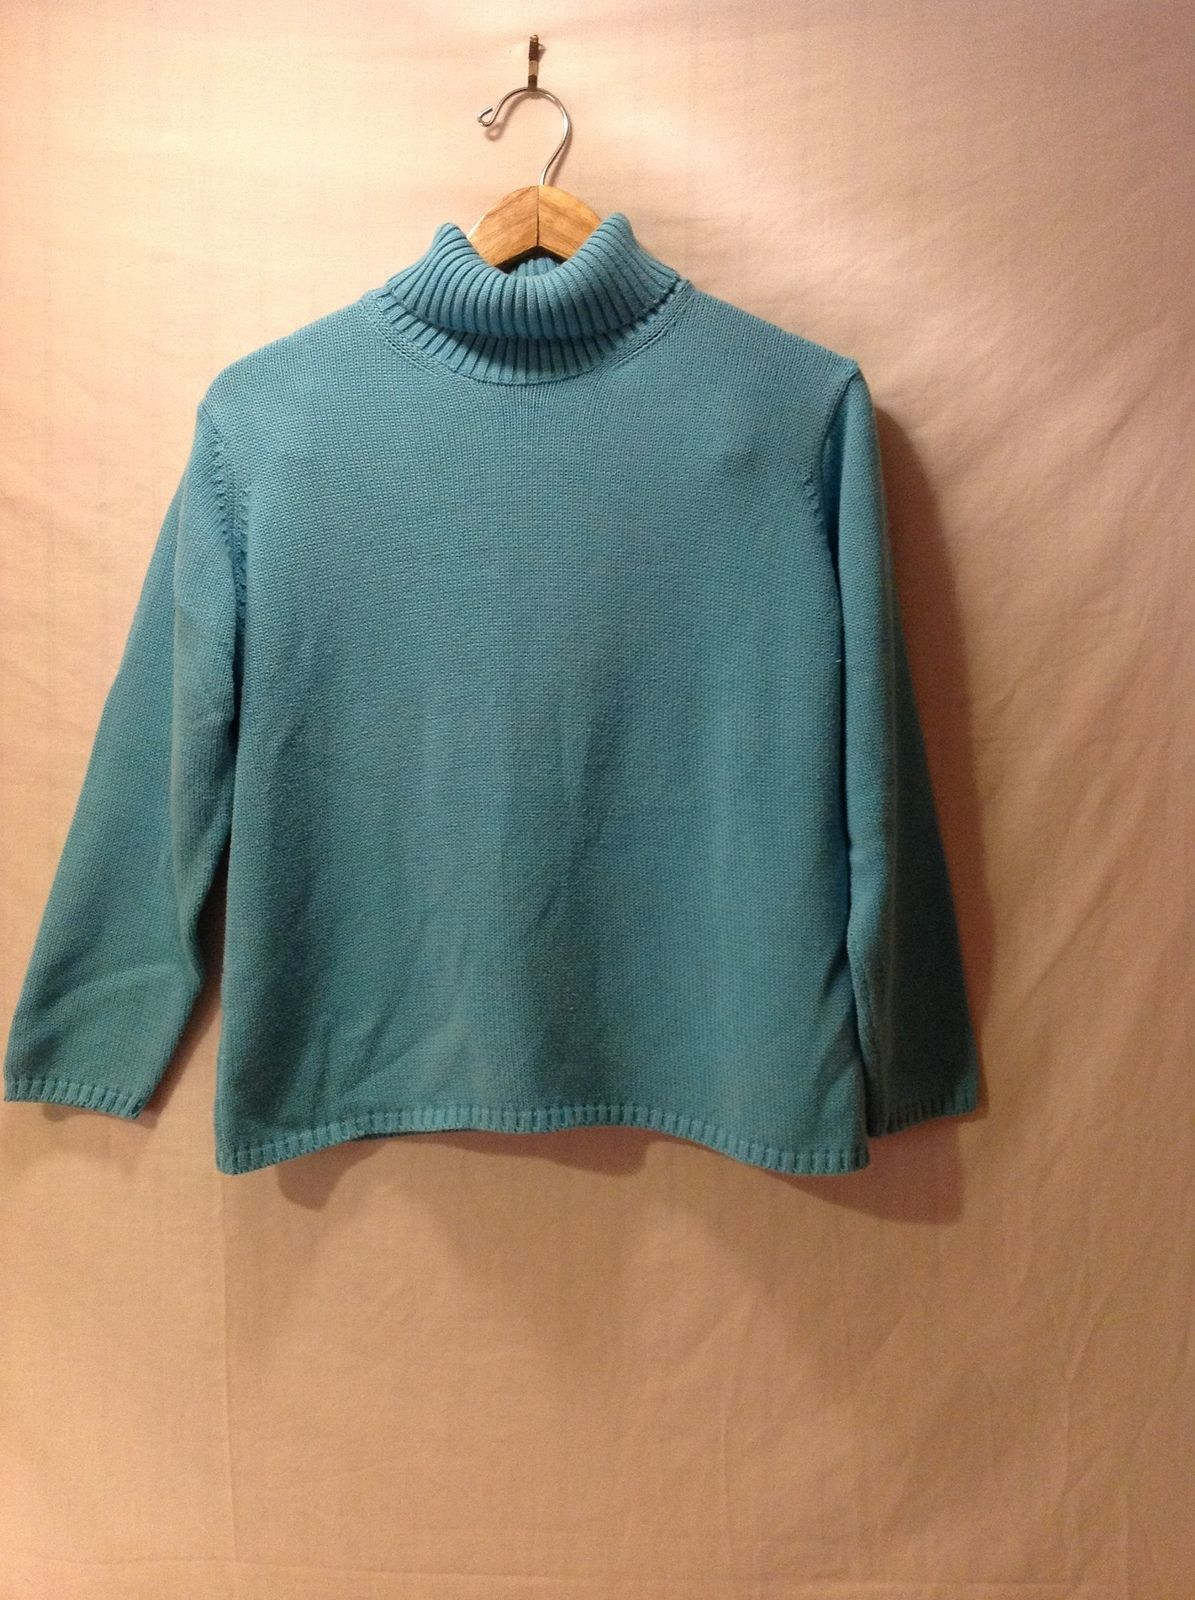 Gollenhaug Collection Womans Light Blue Turtleneck Sweater